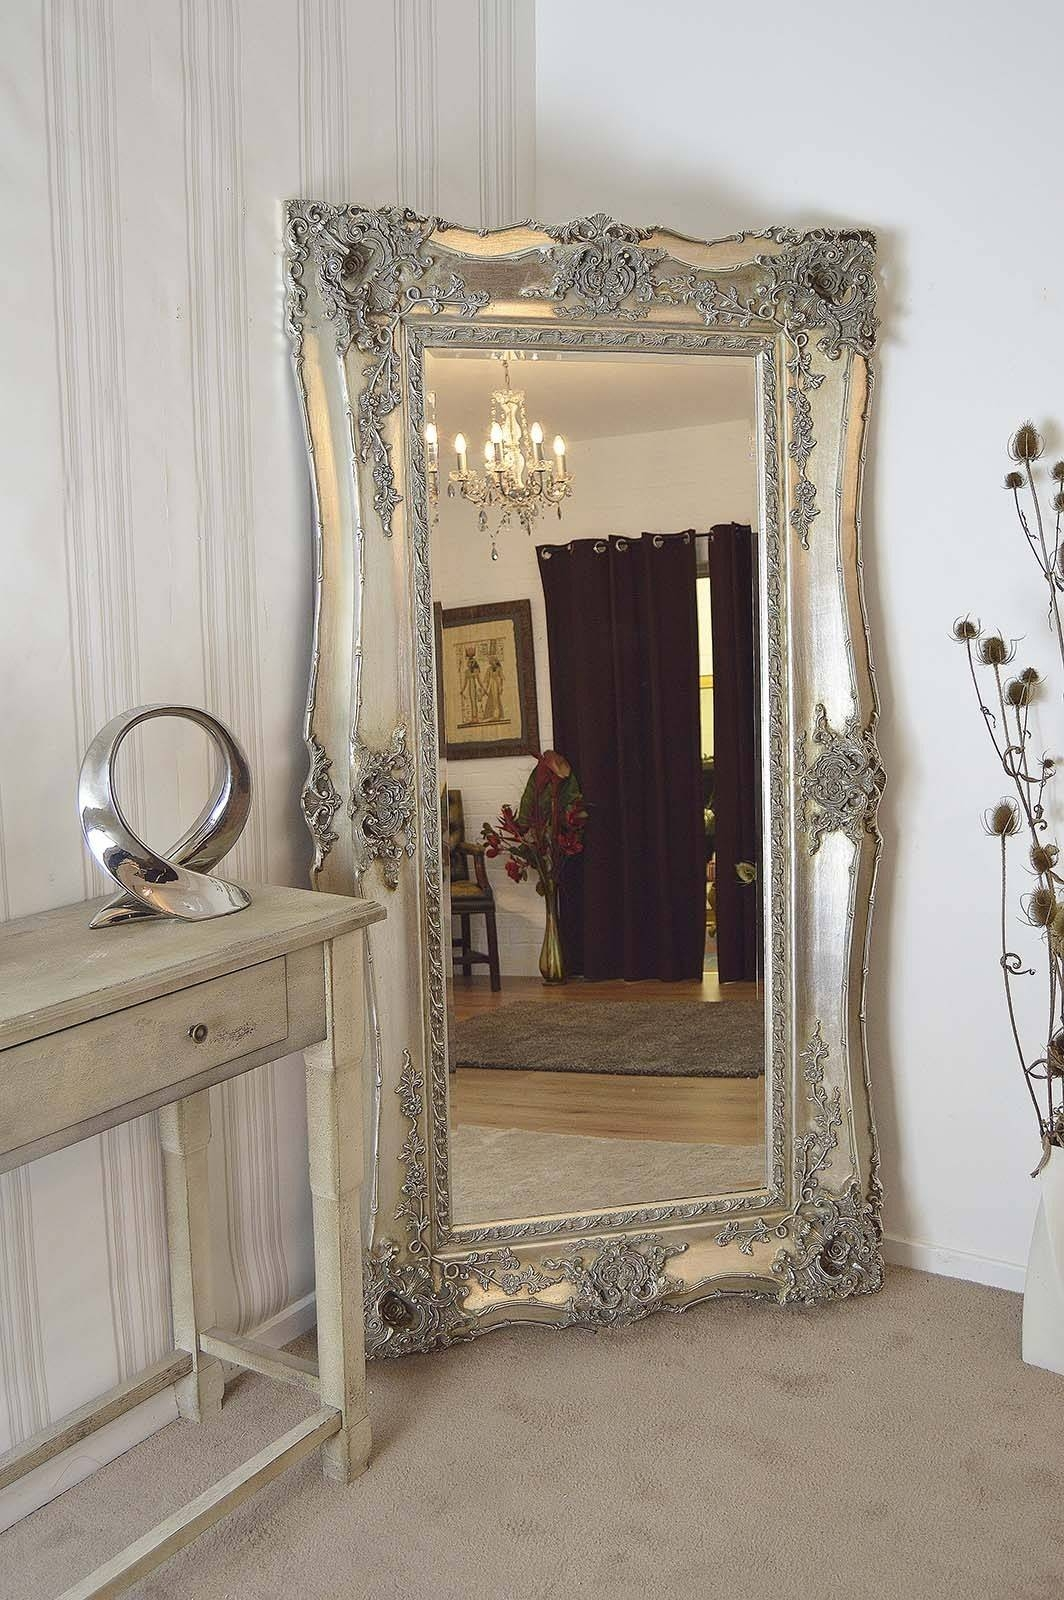 Large Antique Wall Mirror Ornate Frame Antique Ornate Wall Mirrors inside Antique Ornate Mirrors (Image 14 of 25)